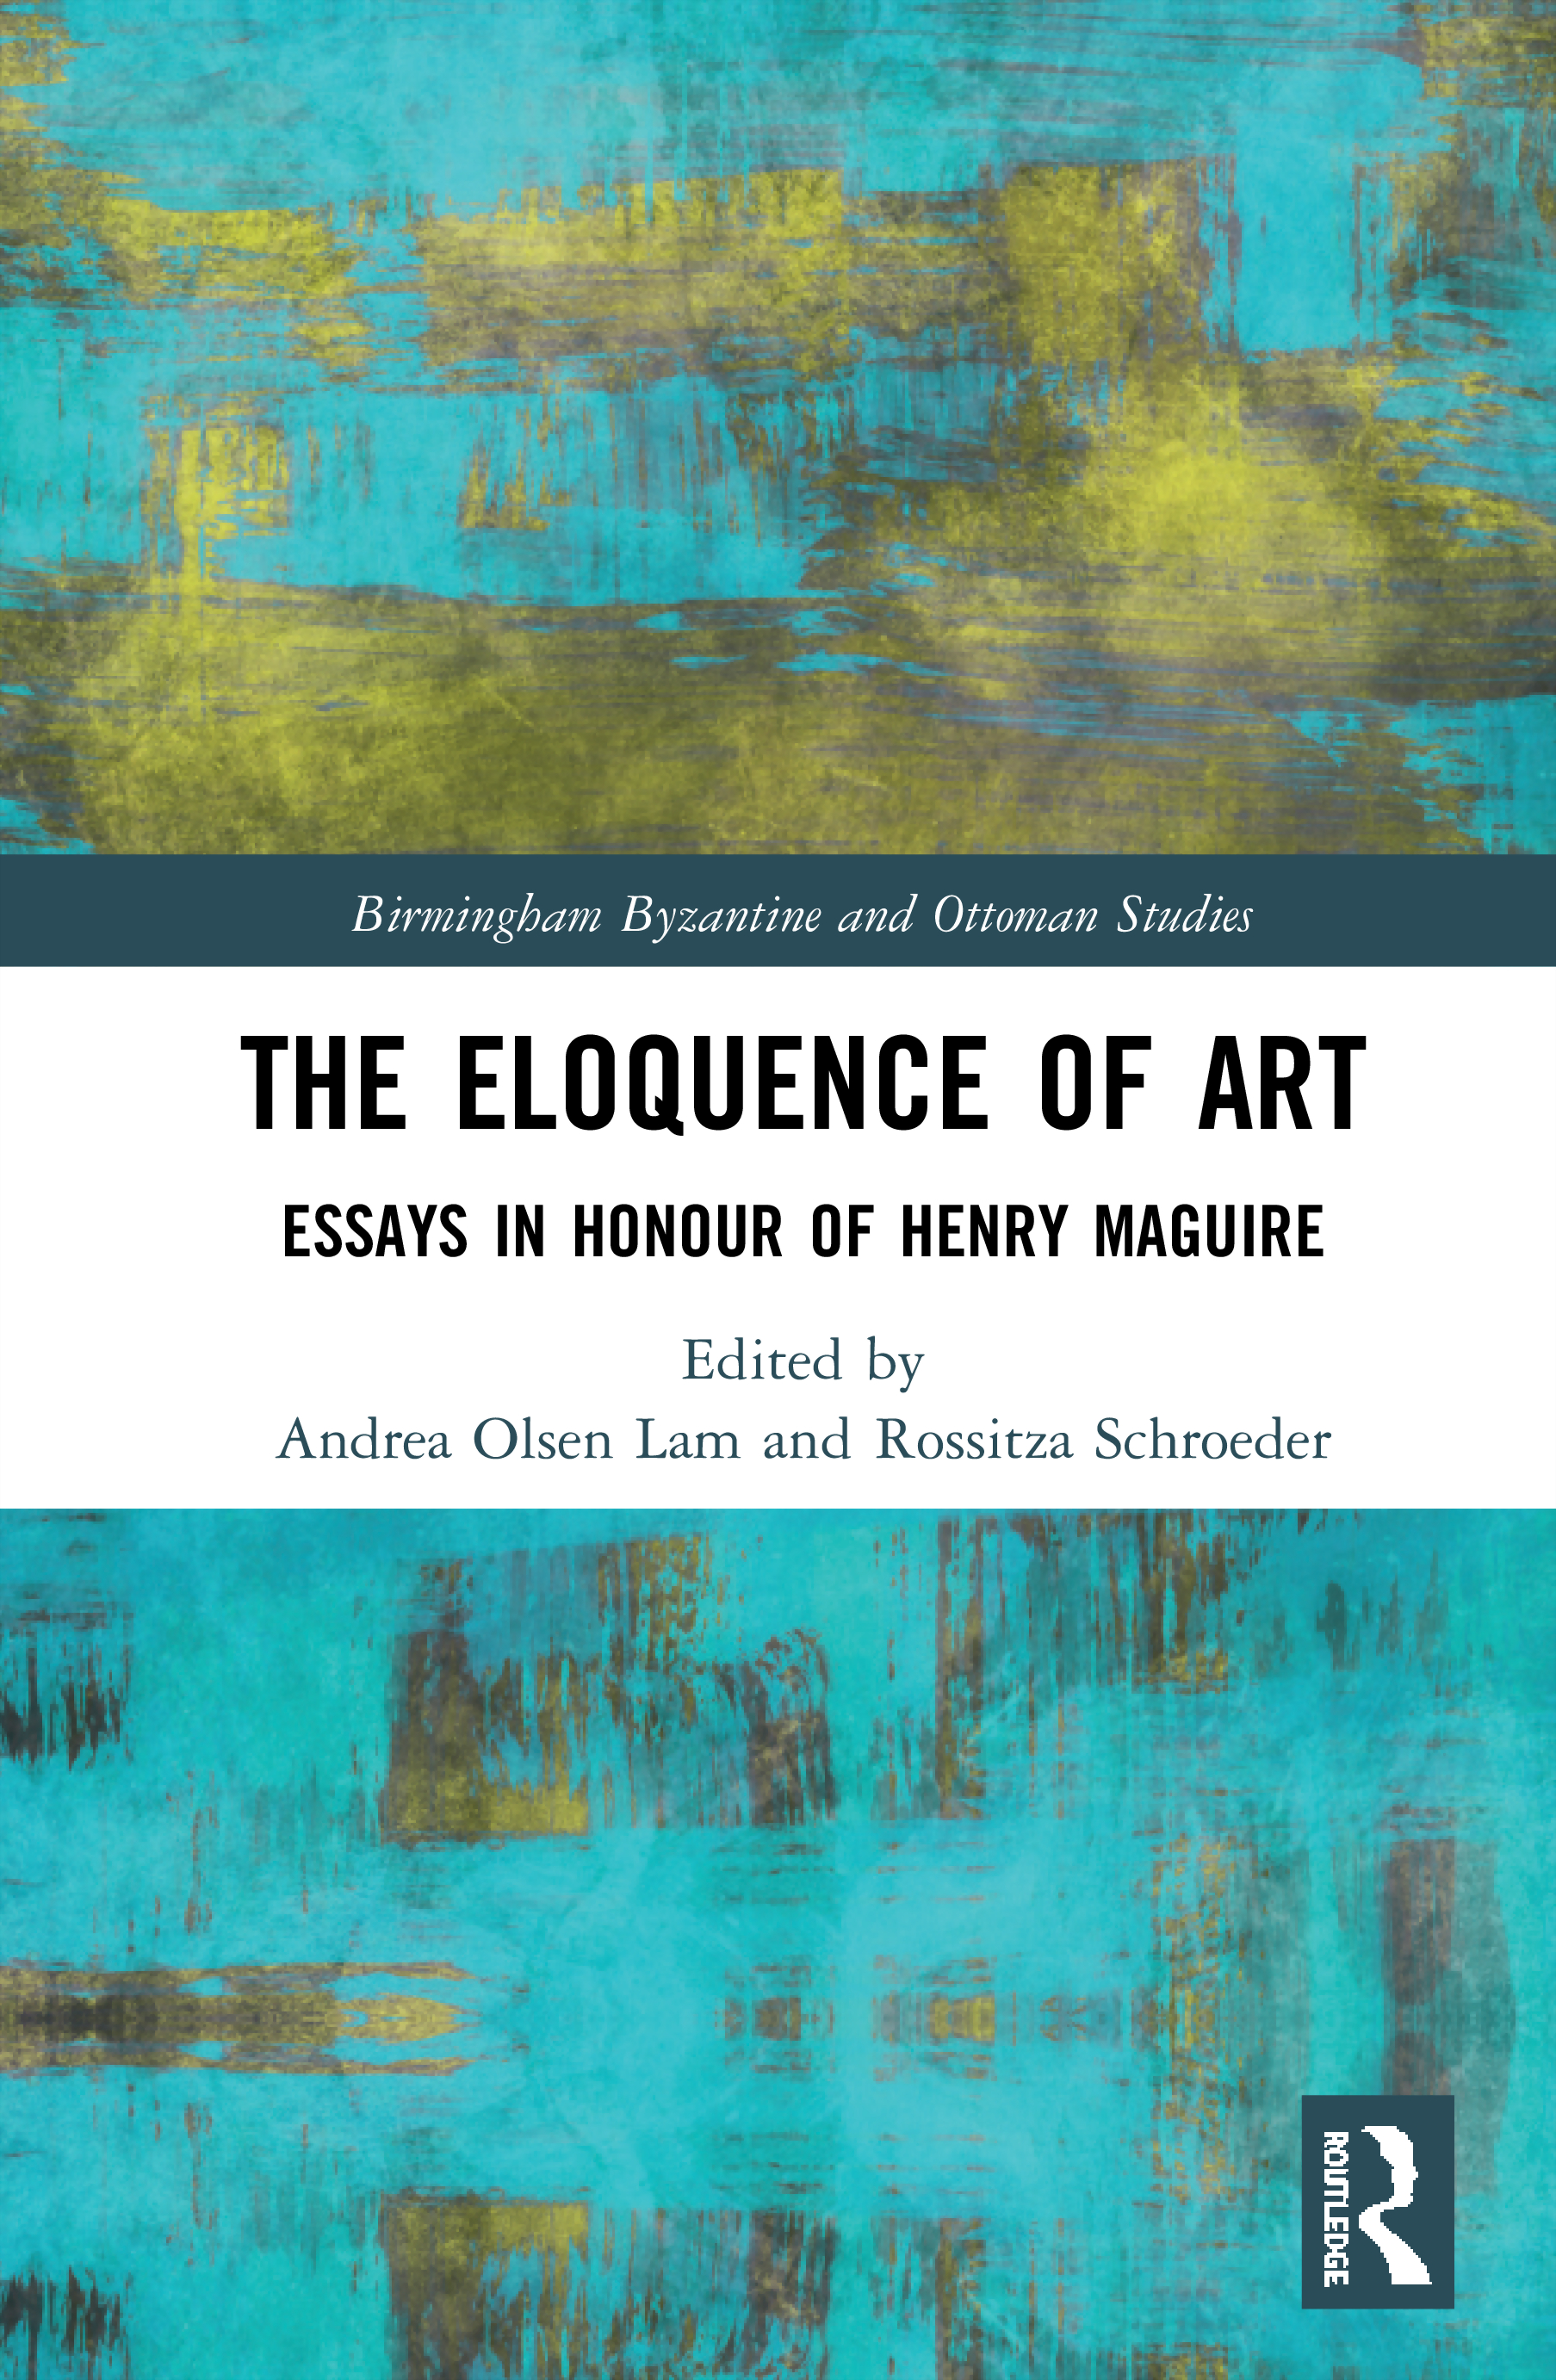 The Eloquence of Art: Essays in Honour of Henry Maguire book cover